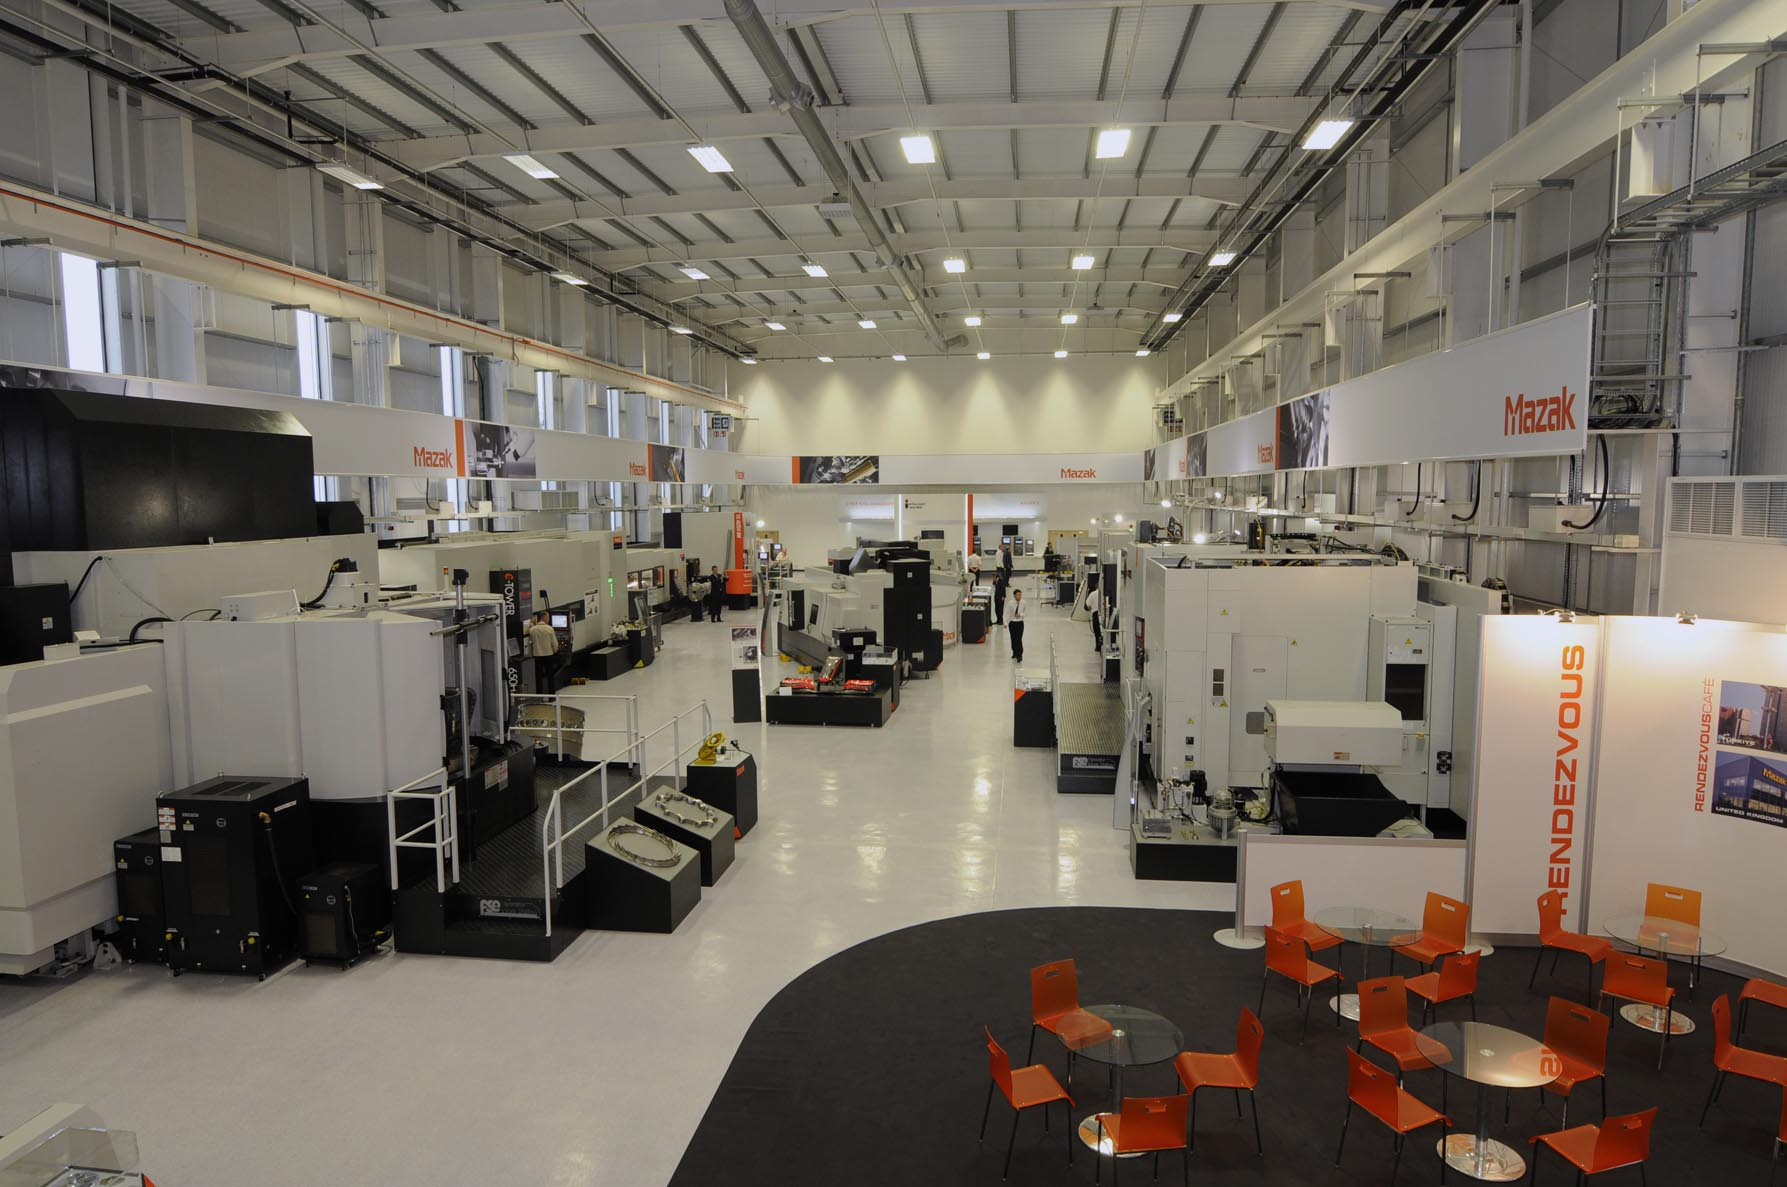 85% of machine tools made at Mzak Worcester are exported to Europe with Germany the main recipient